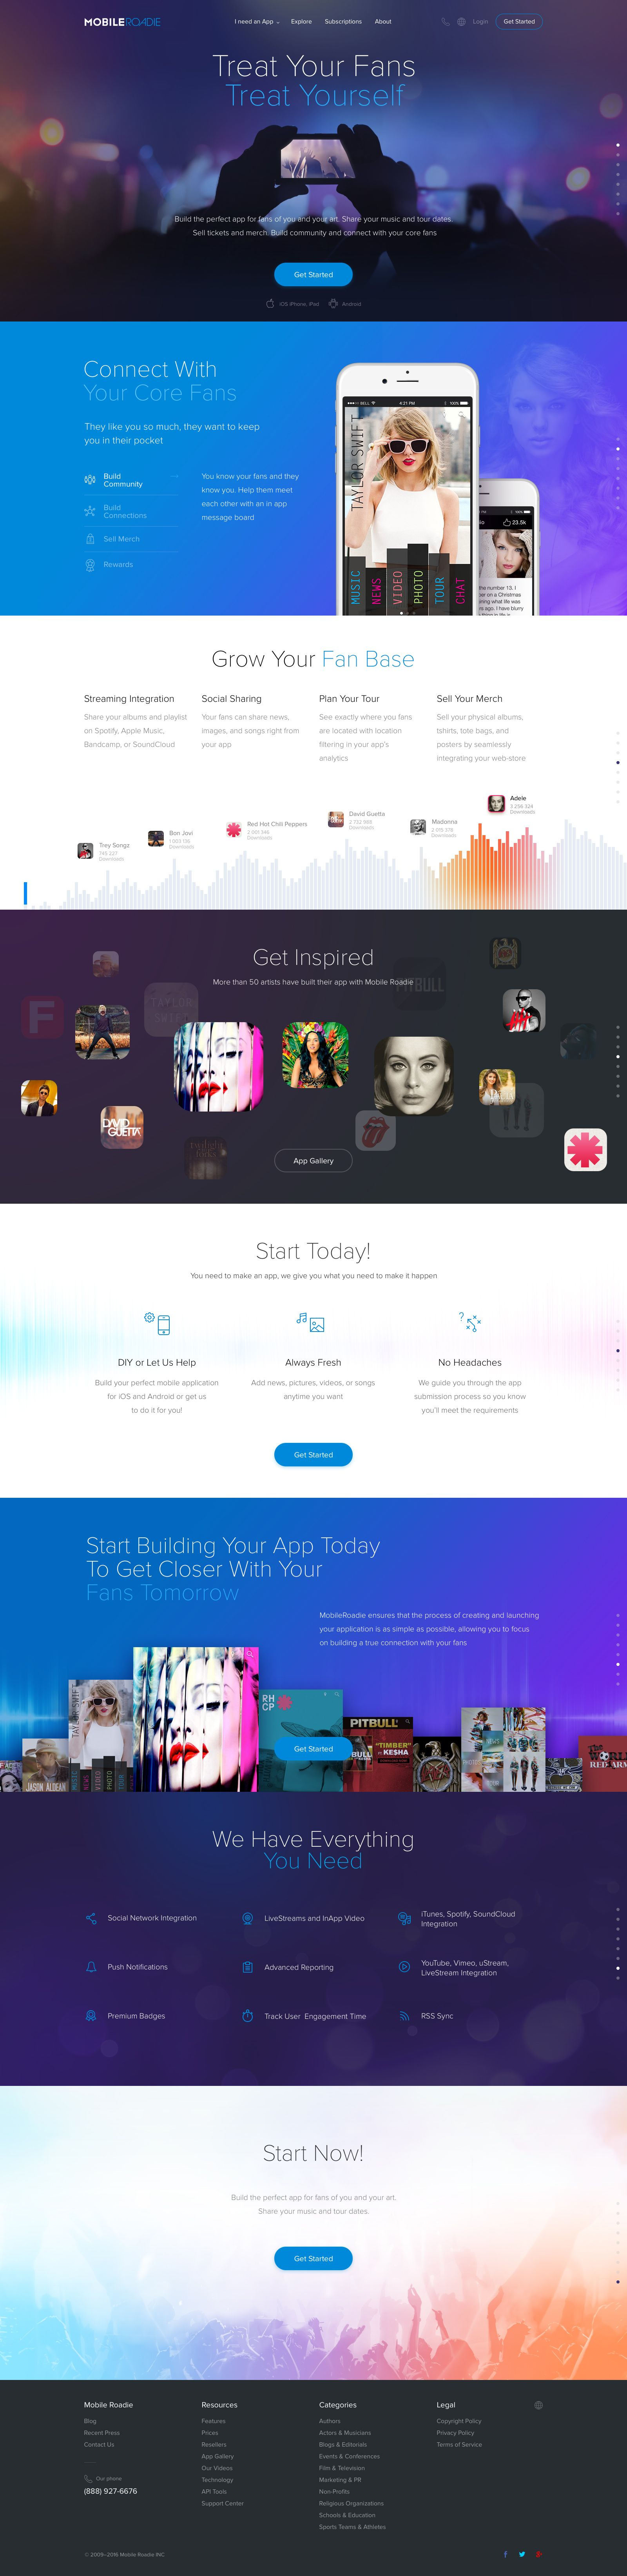 Music 1600 | Landing Page Inspirations | Pinterest | Musica y Pareja